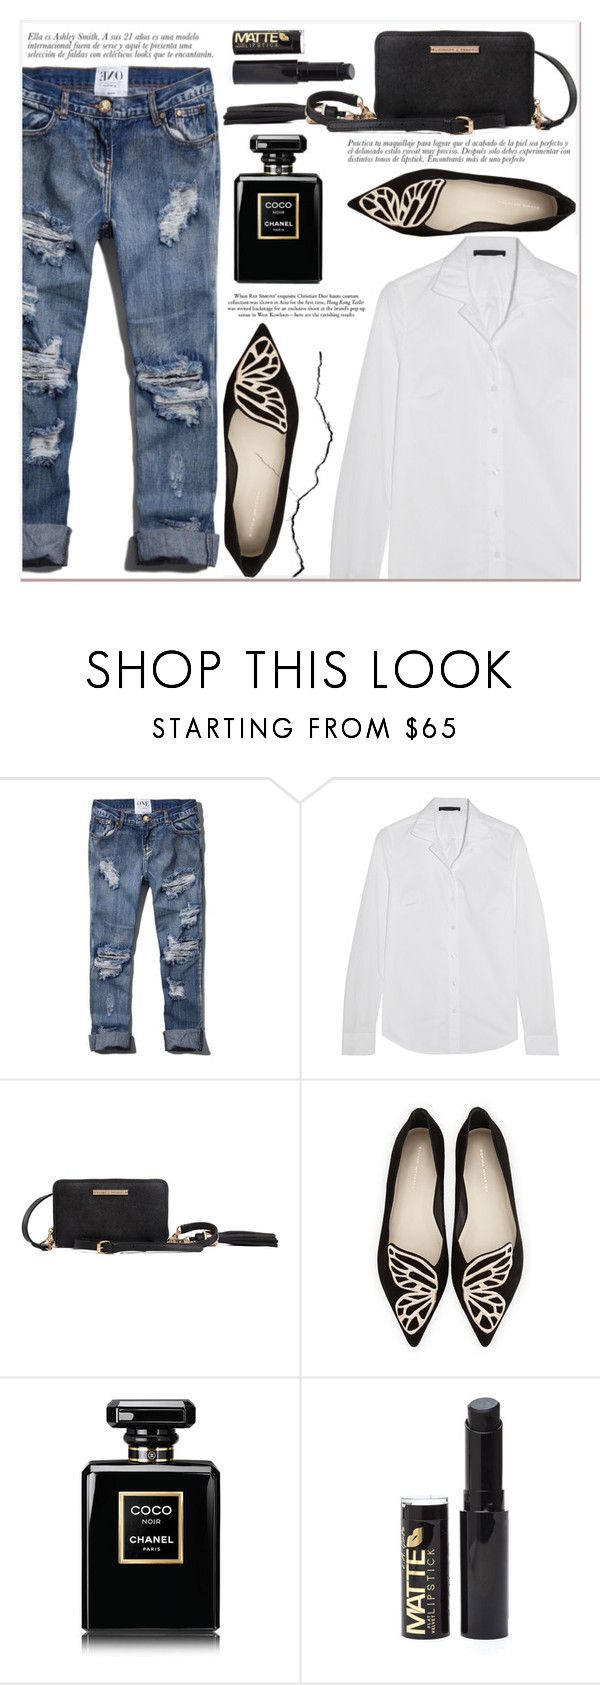 # I/1 Poppy & Peonies by lucky-1990 on Polyvore featuring Karl Lagerfeld, Abercrombie & Fitch, Sophia Webster and Chanel